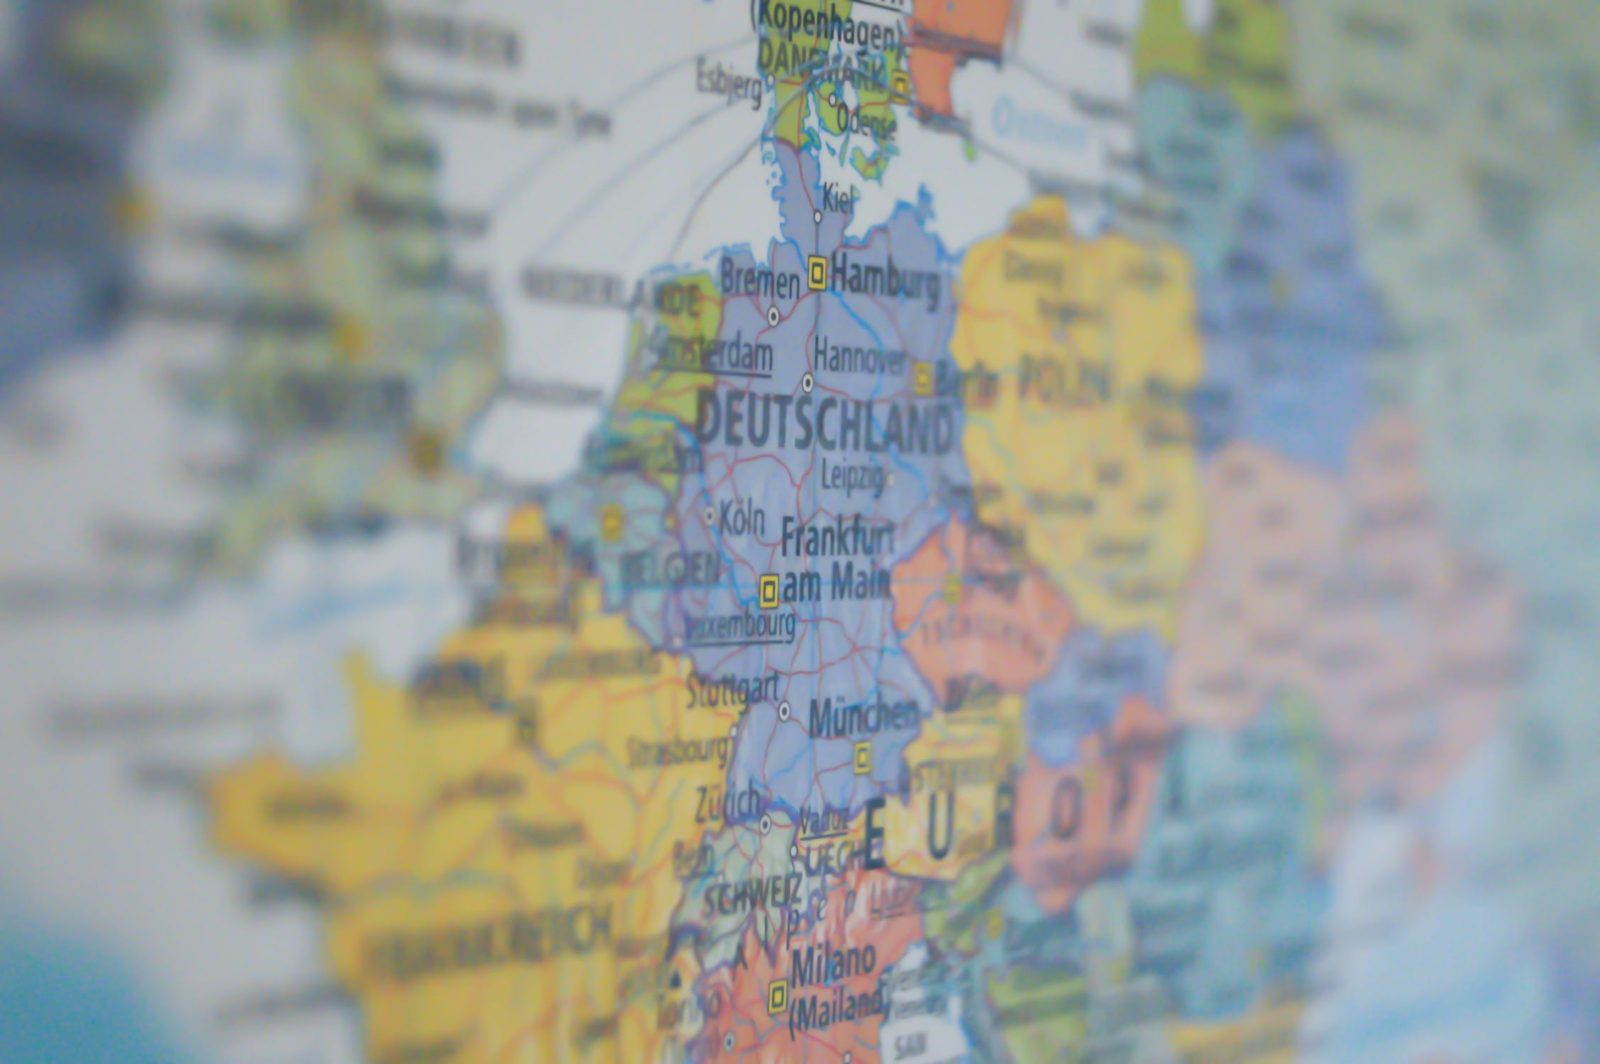 Europe aiming to be at forefront of fintech